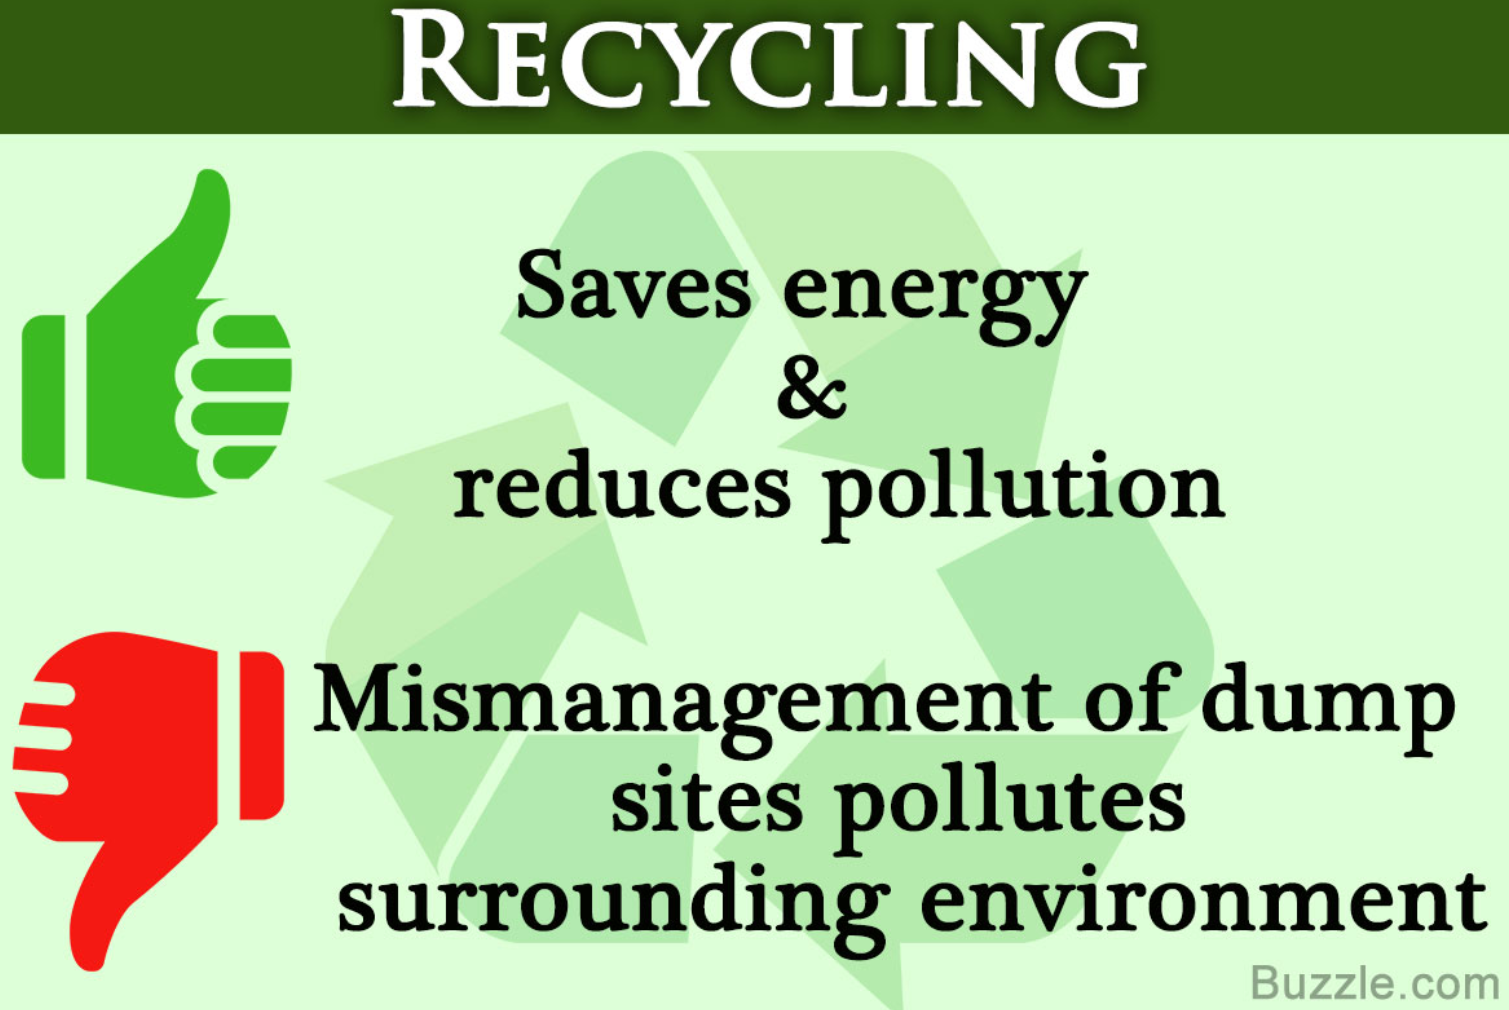 Picture Listing the Benefits of Recycling